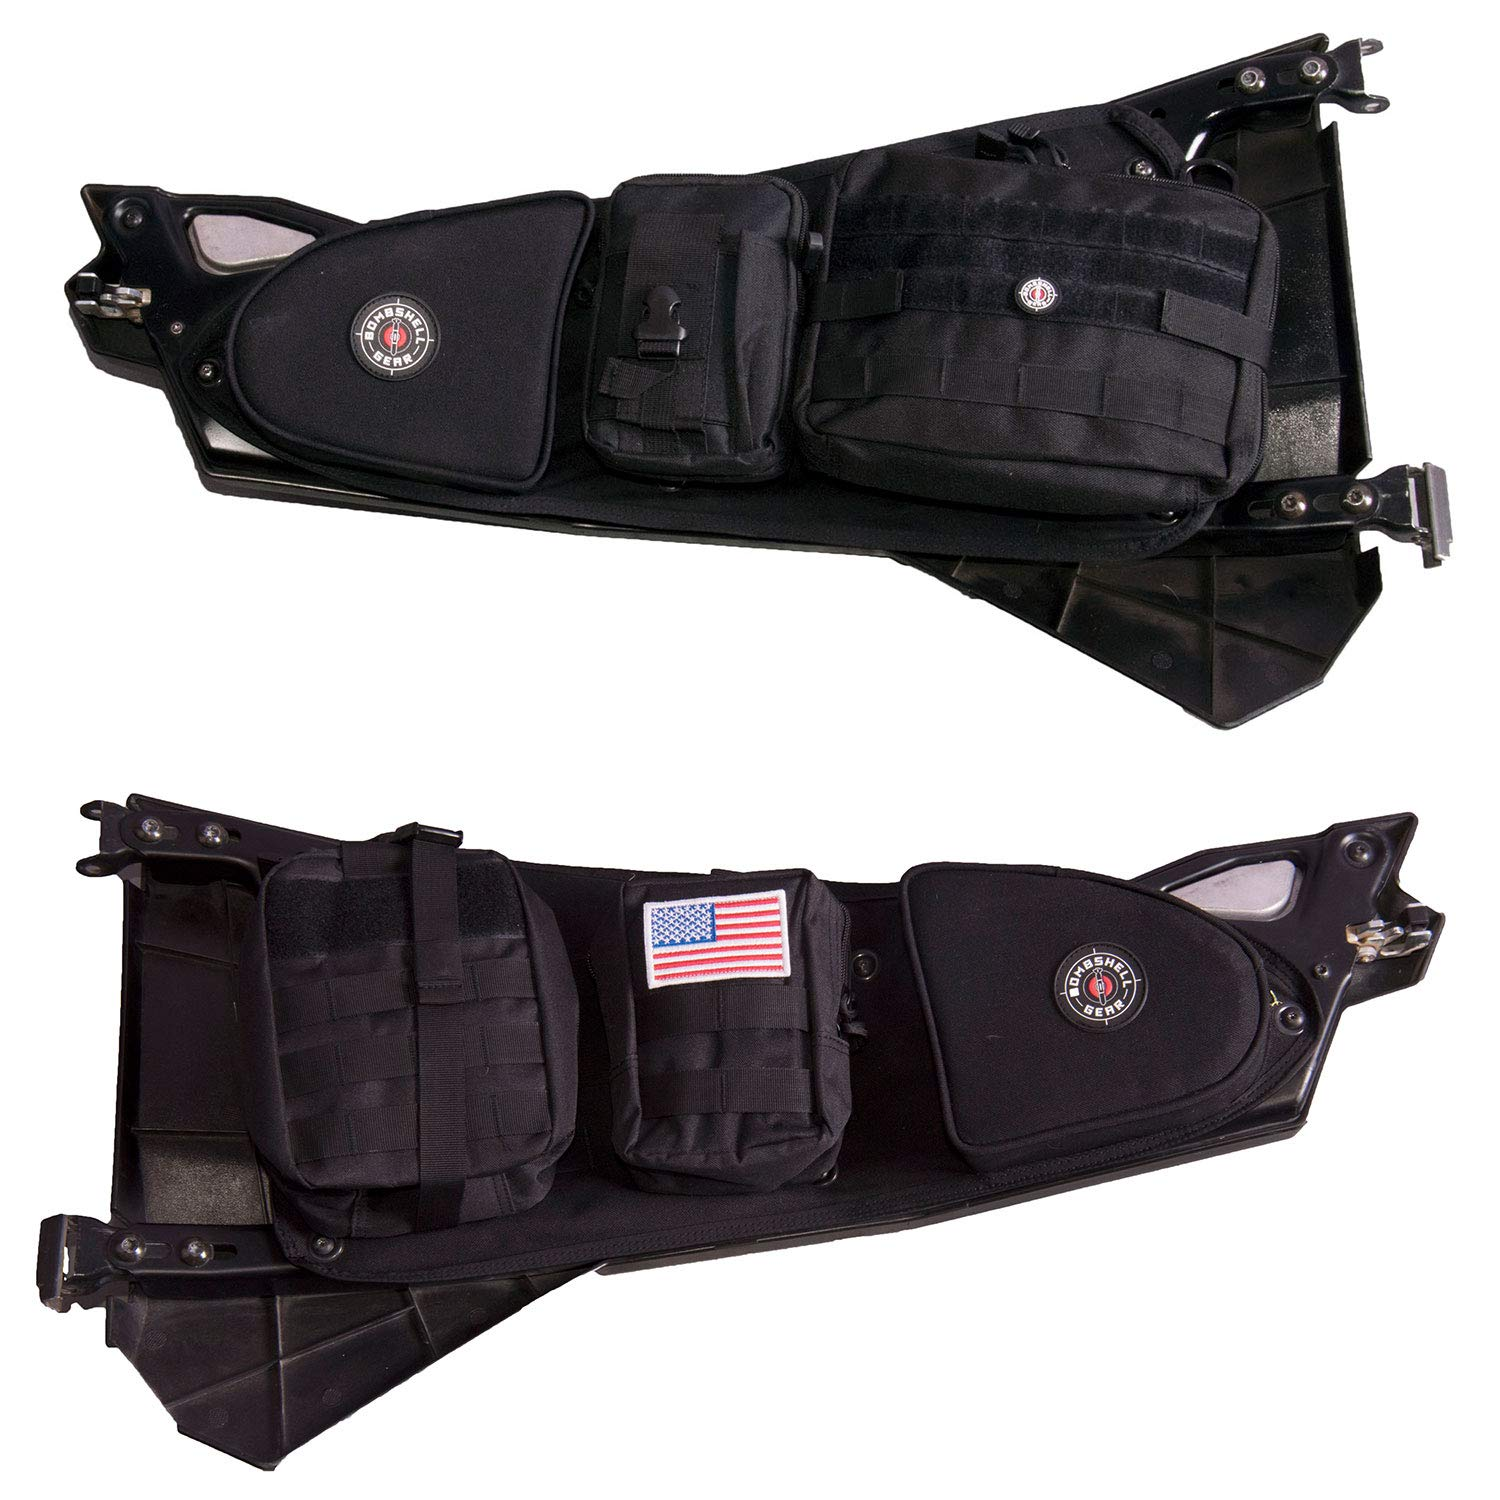 Bombshell Gear Polaris RZR UTV Storage Door Bags w/MOLLE Pouches (Pair)